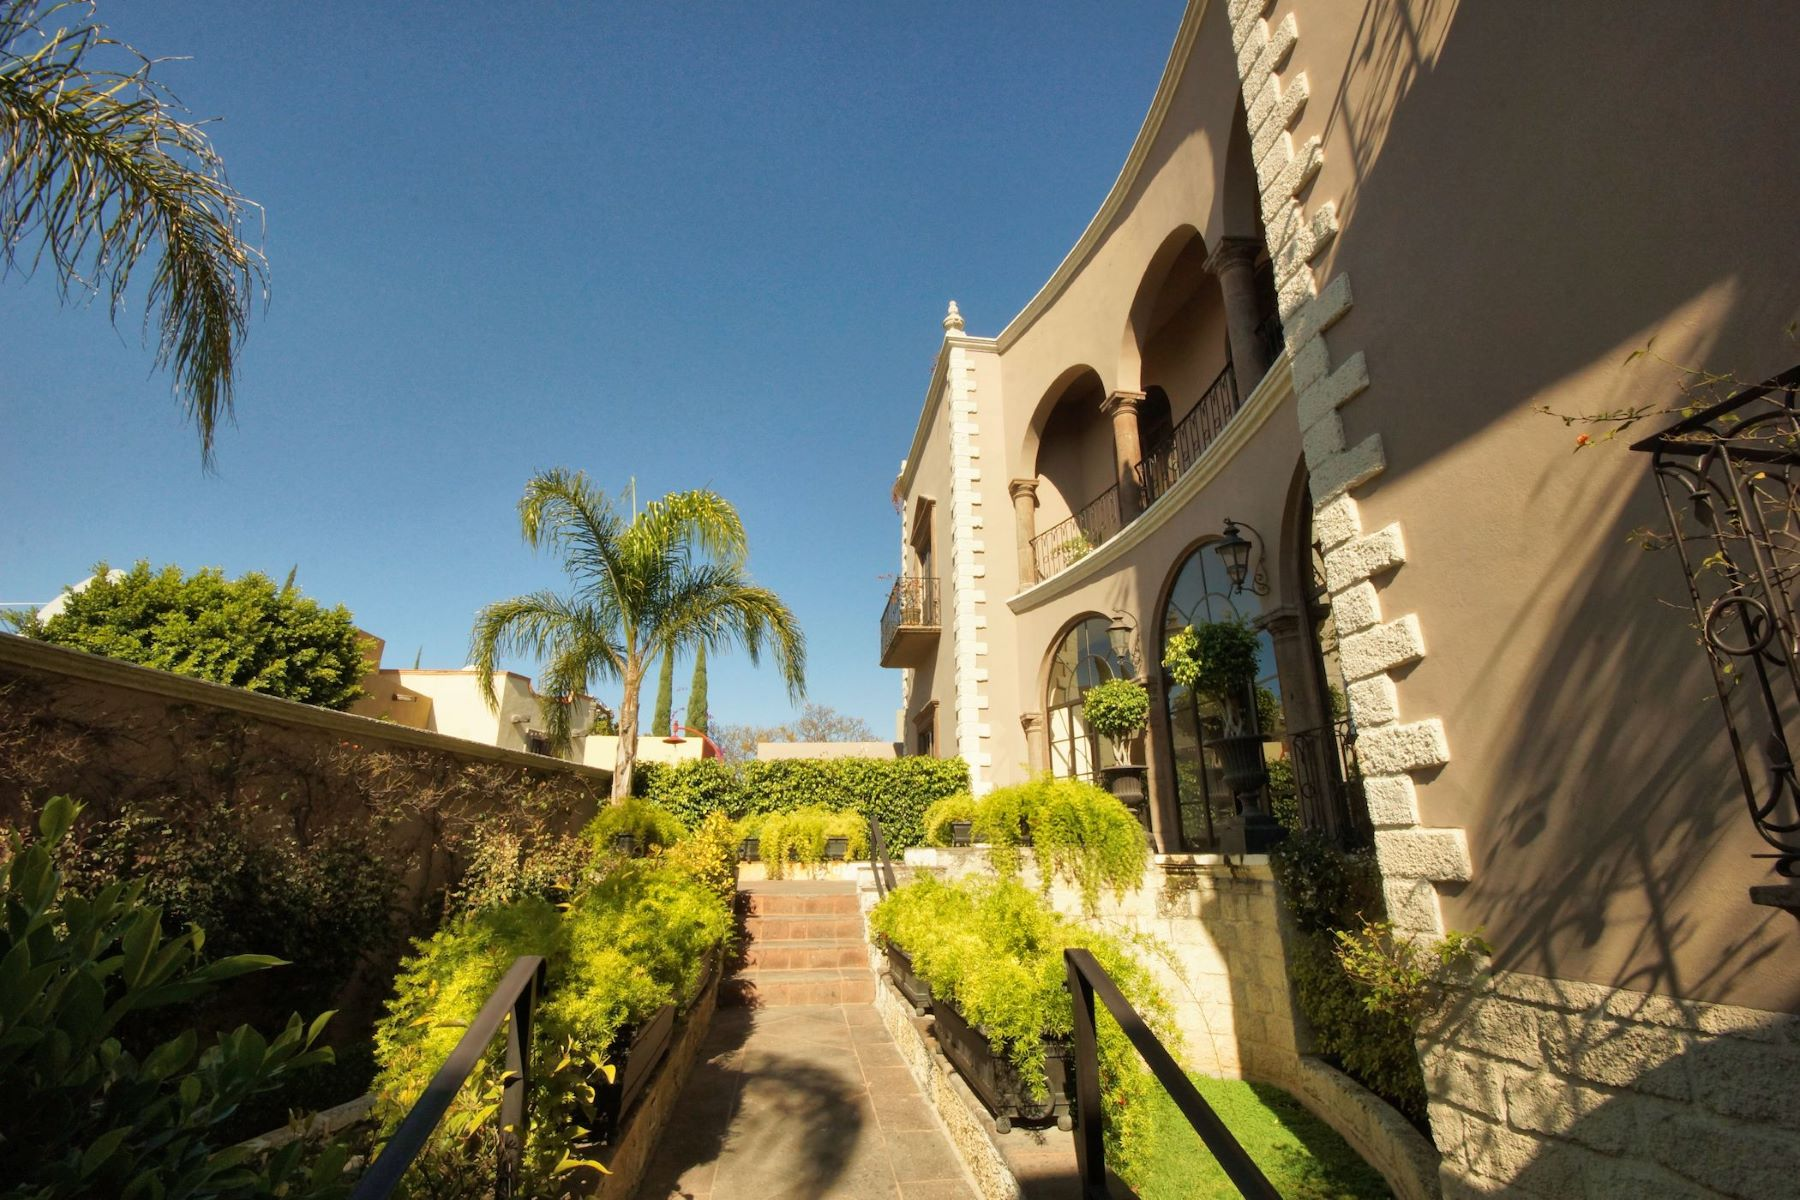 Additional photo for property listing at VILLA MARIA ROMA Balcones, San Miguel De Allende, Guanajuato México